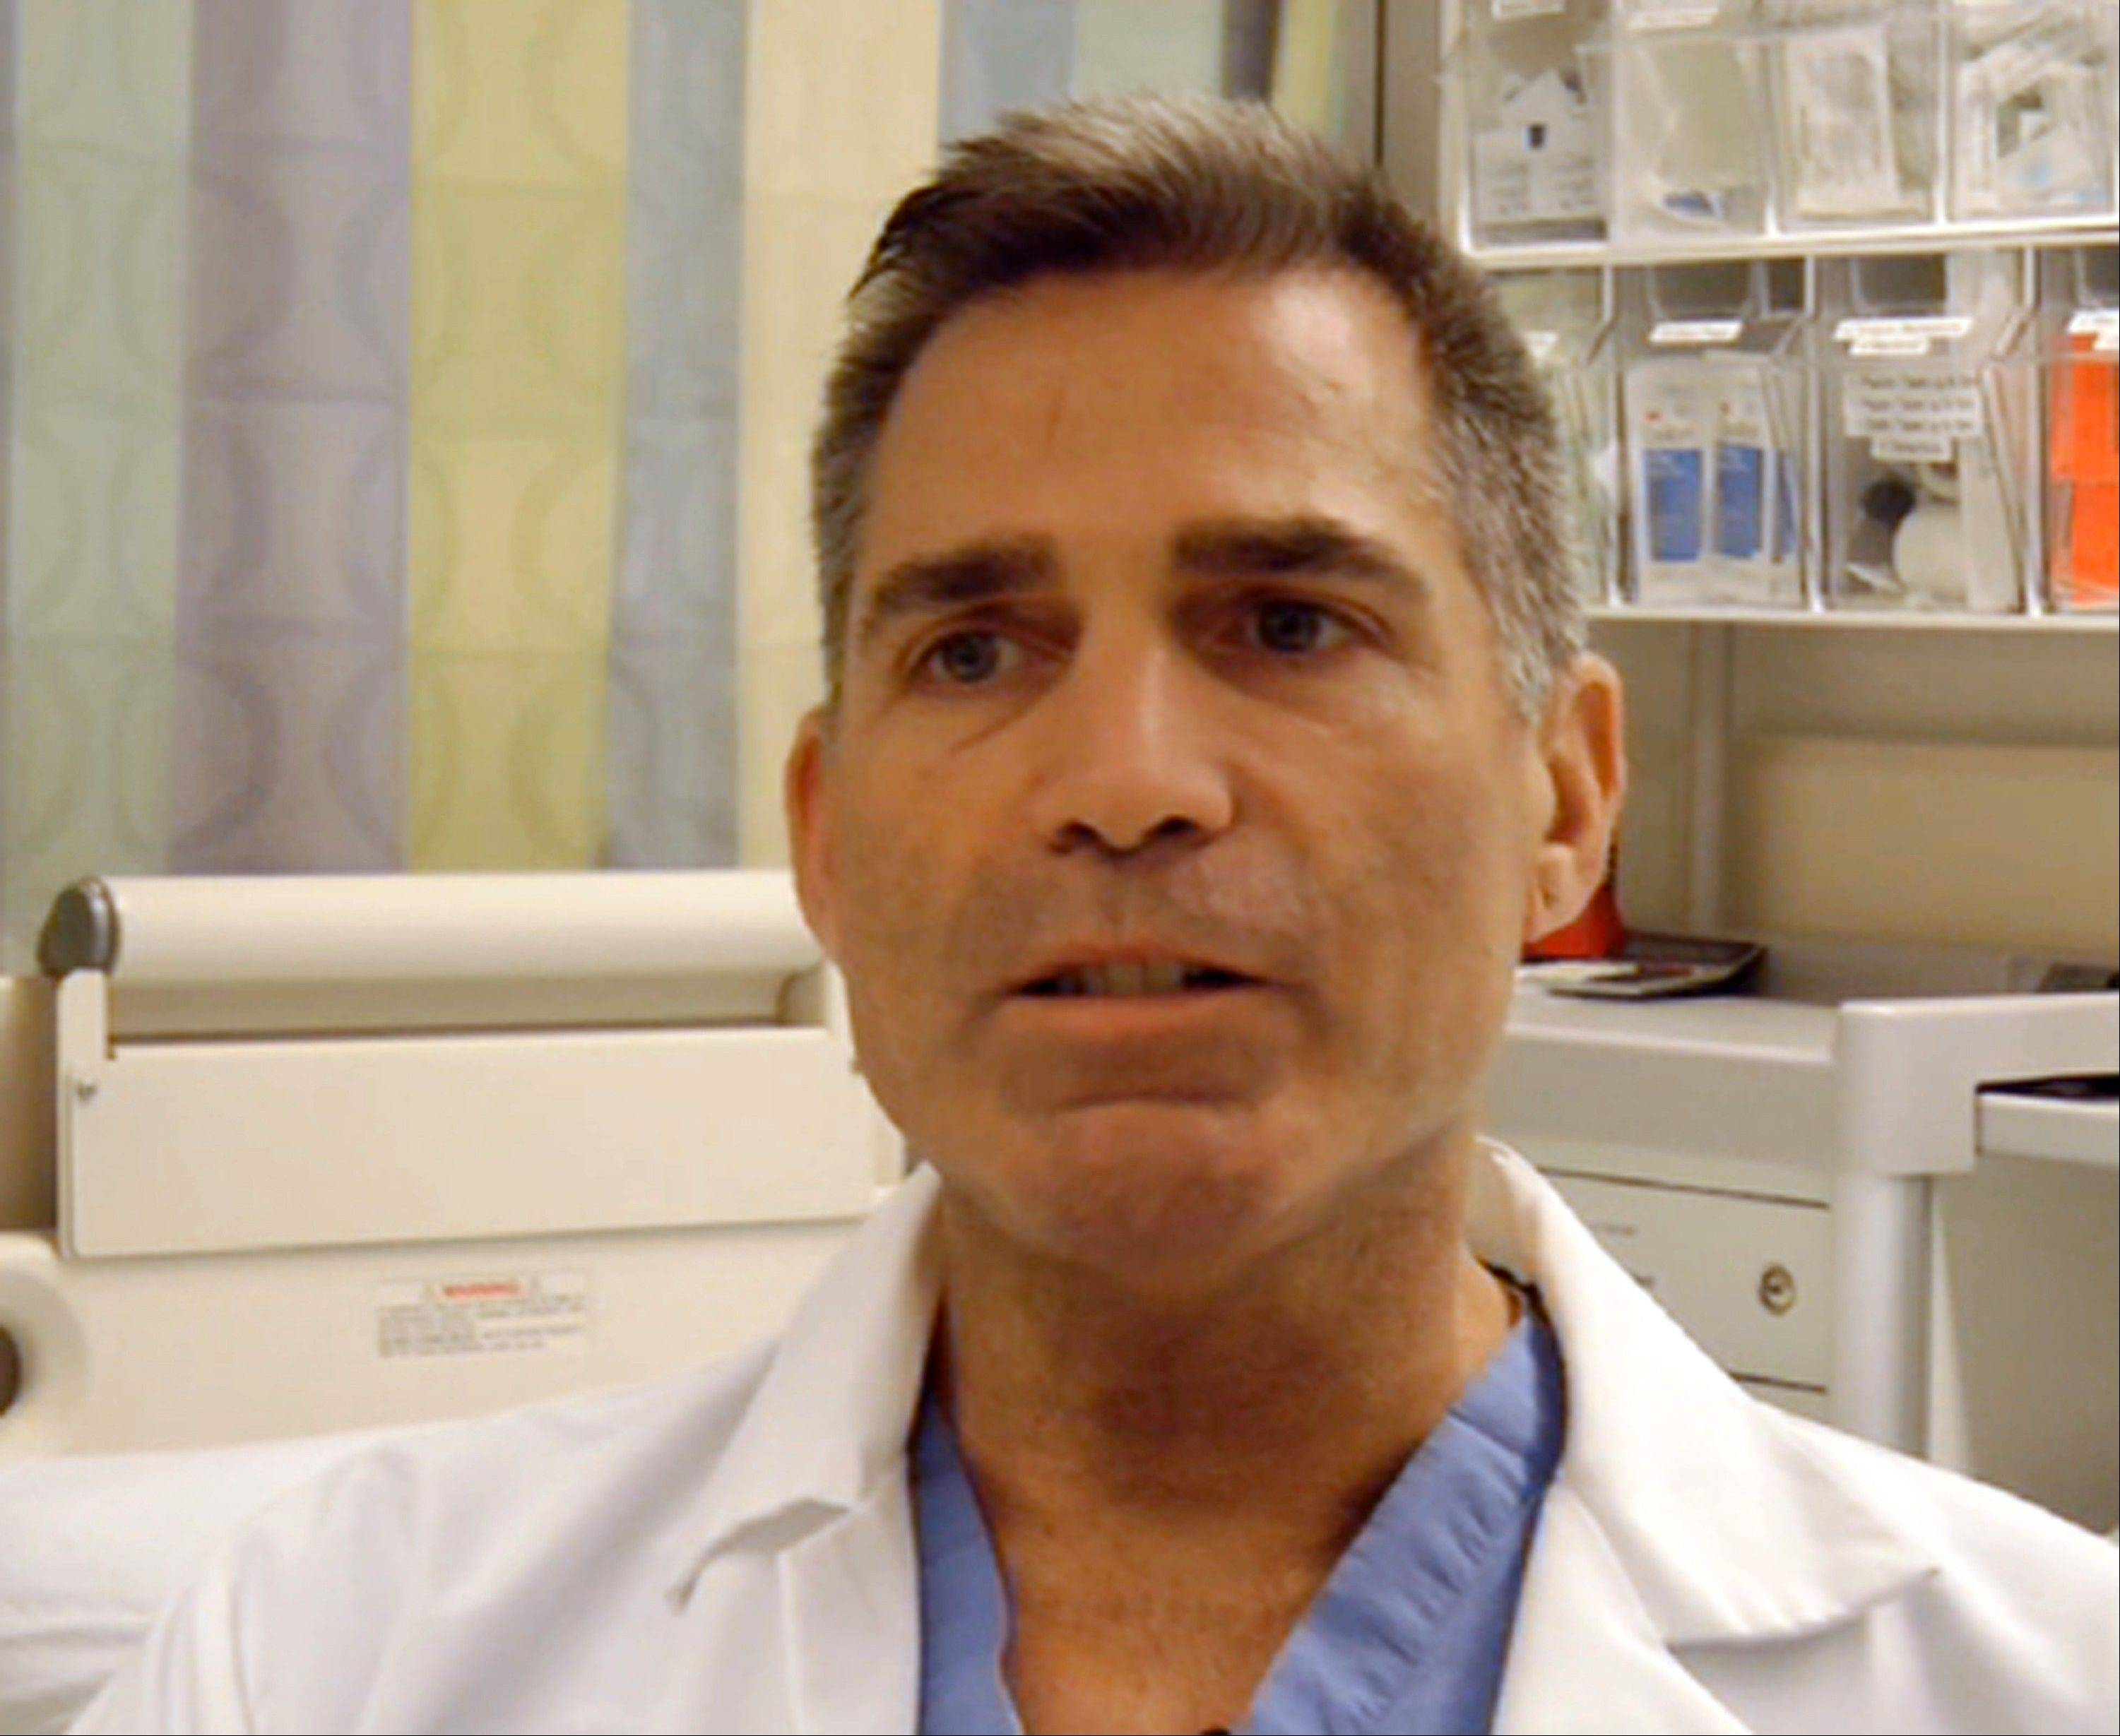 In this frame grab from Saturday, April 20, 2013, video, Massachusetts General Hospital nurse Adam Barrett talks about the horrific early hours as bloody patients poured in after the explosions at the Boston Marathon.